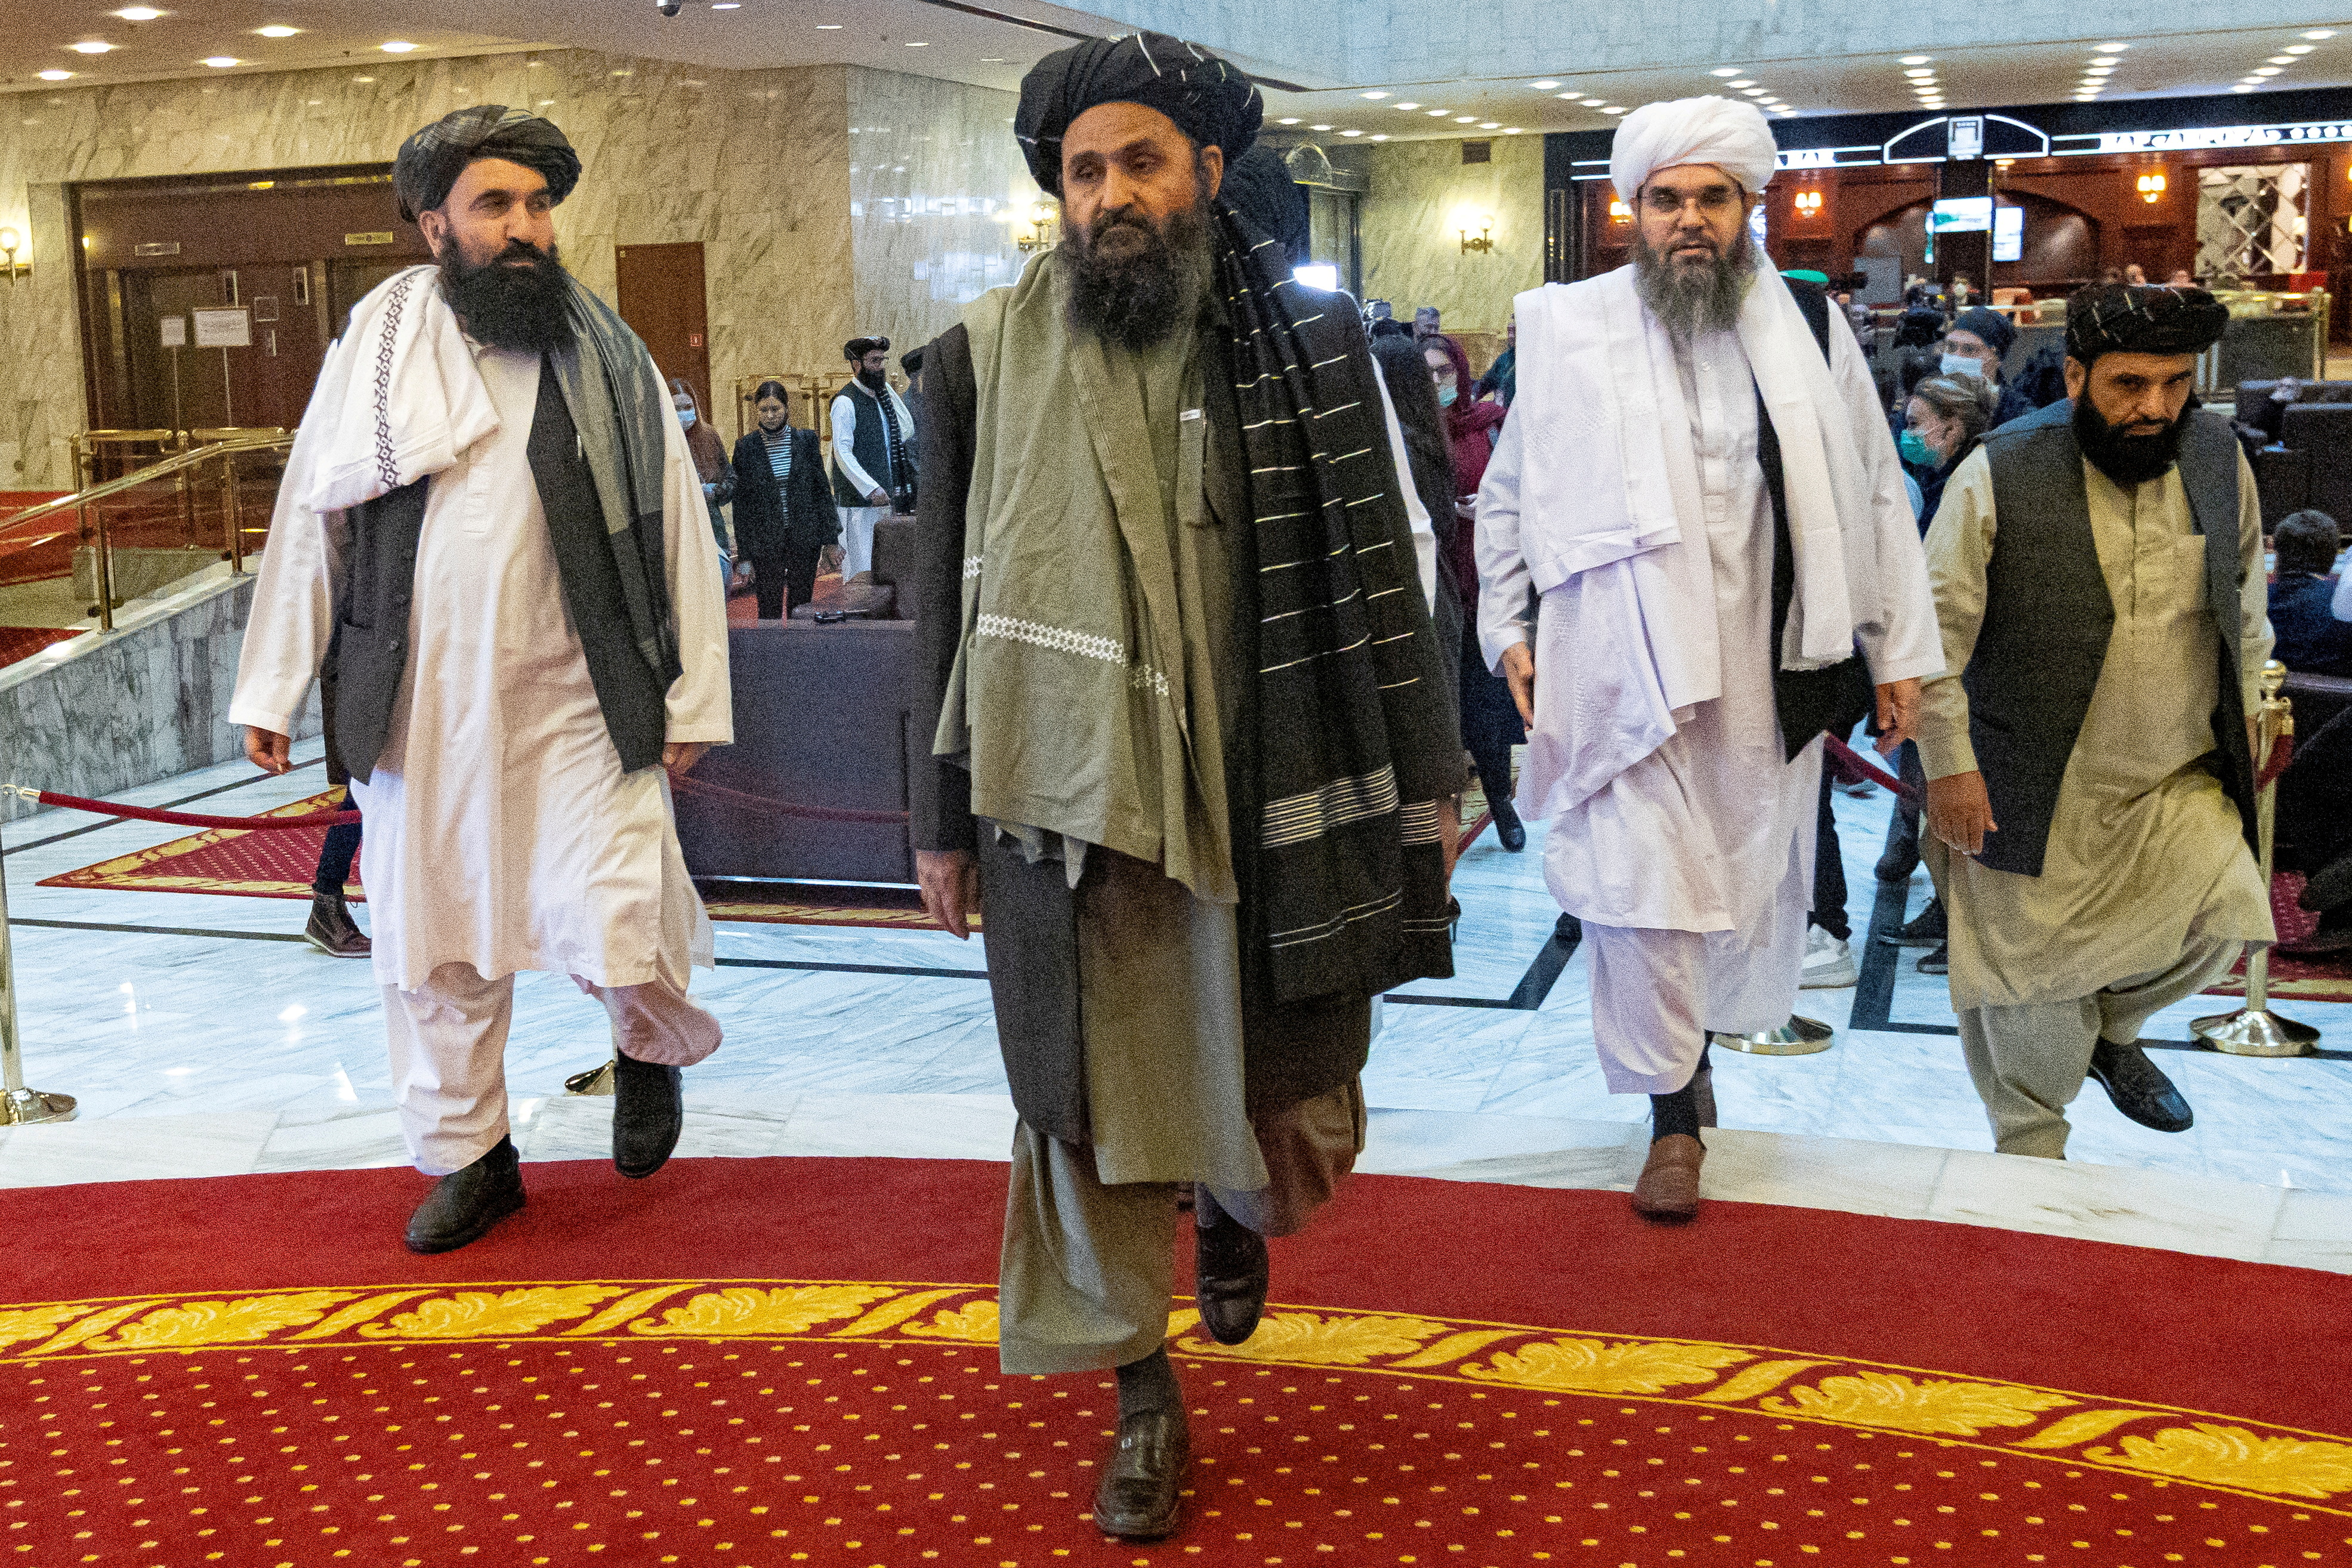 Mullah Abdul Ghani Baradar, the Taliban's deputy leader and negotiator, and other delegation members attend the Afghan peace conference in Moscow, Russia March 18, 2021. Alexander Zemlianichenko/Pool via REUTERS